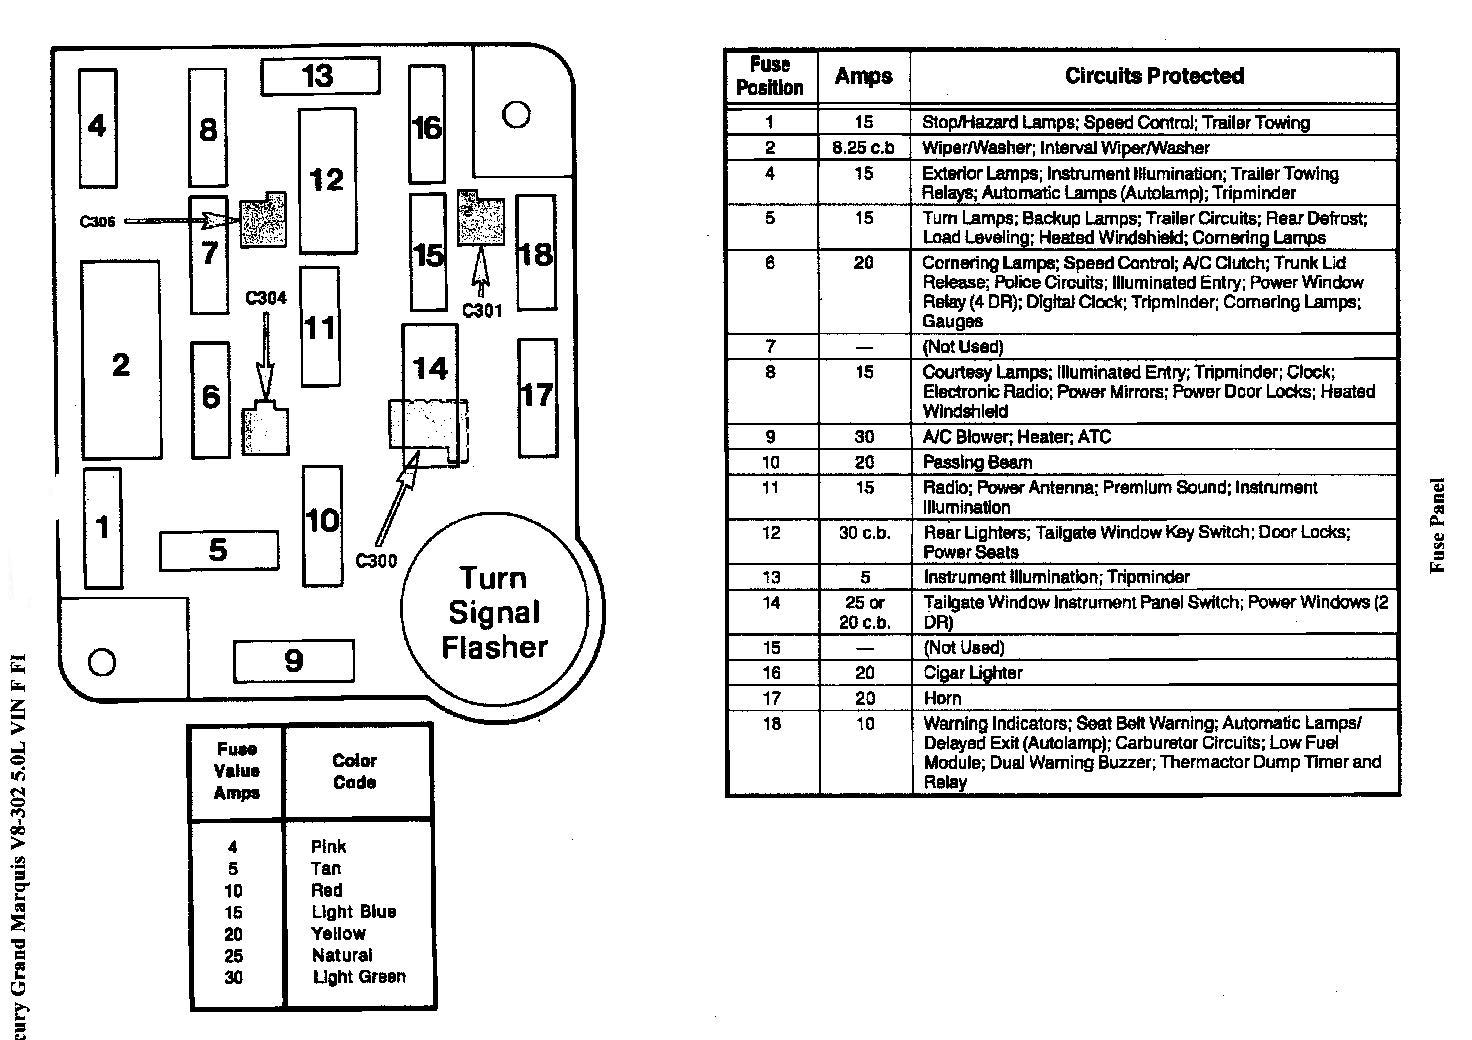 hight resolution of 1997 mercury sable wiring diagram wiring diagram database 1997 crown vic fuse box diagram 1997 crown victoria fuse diagram